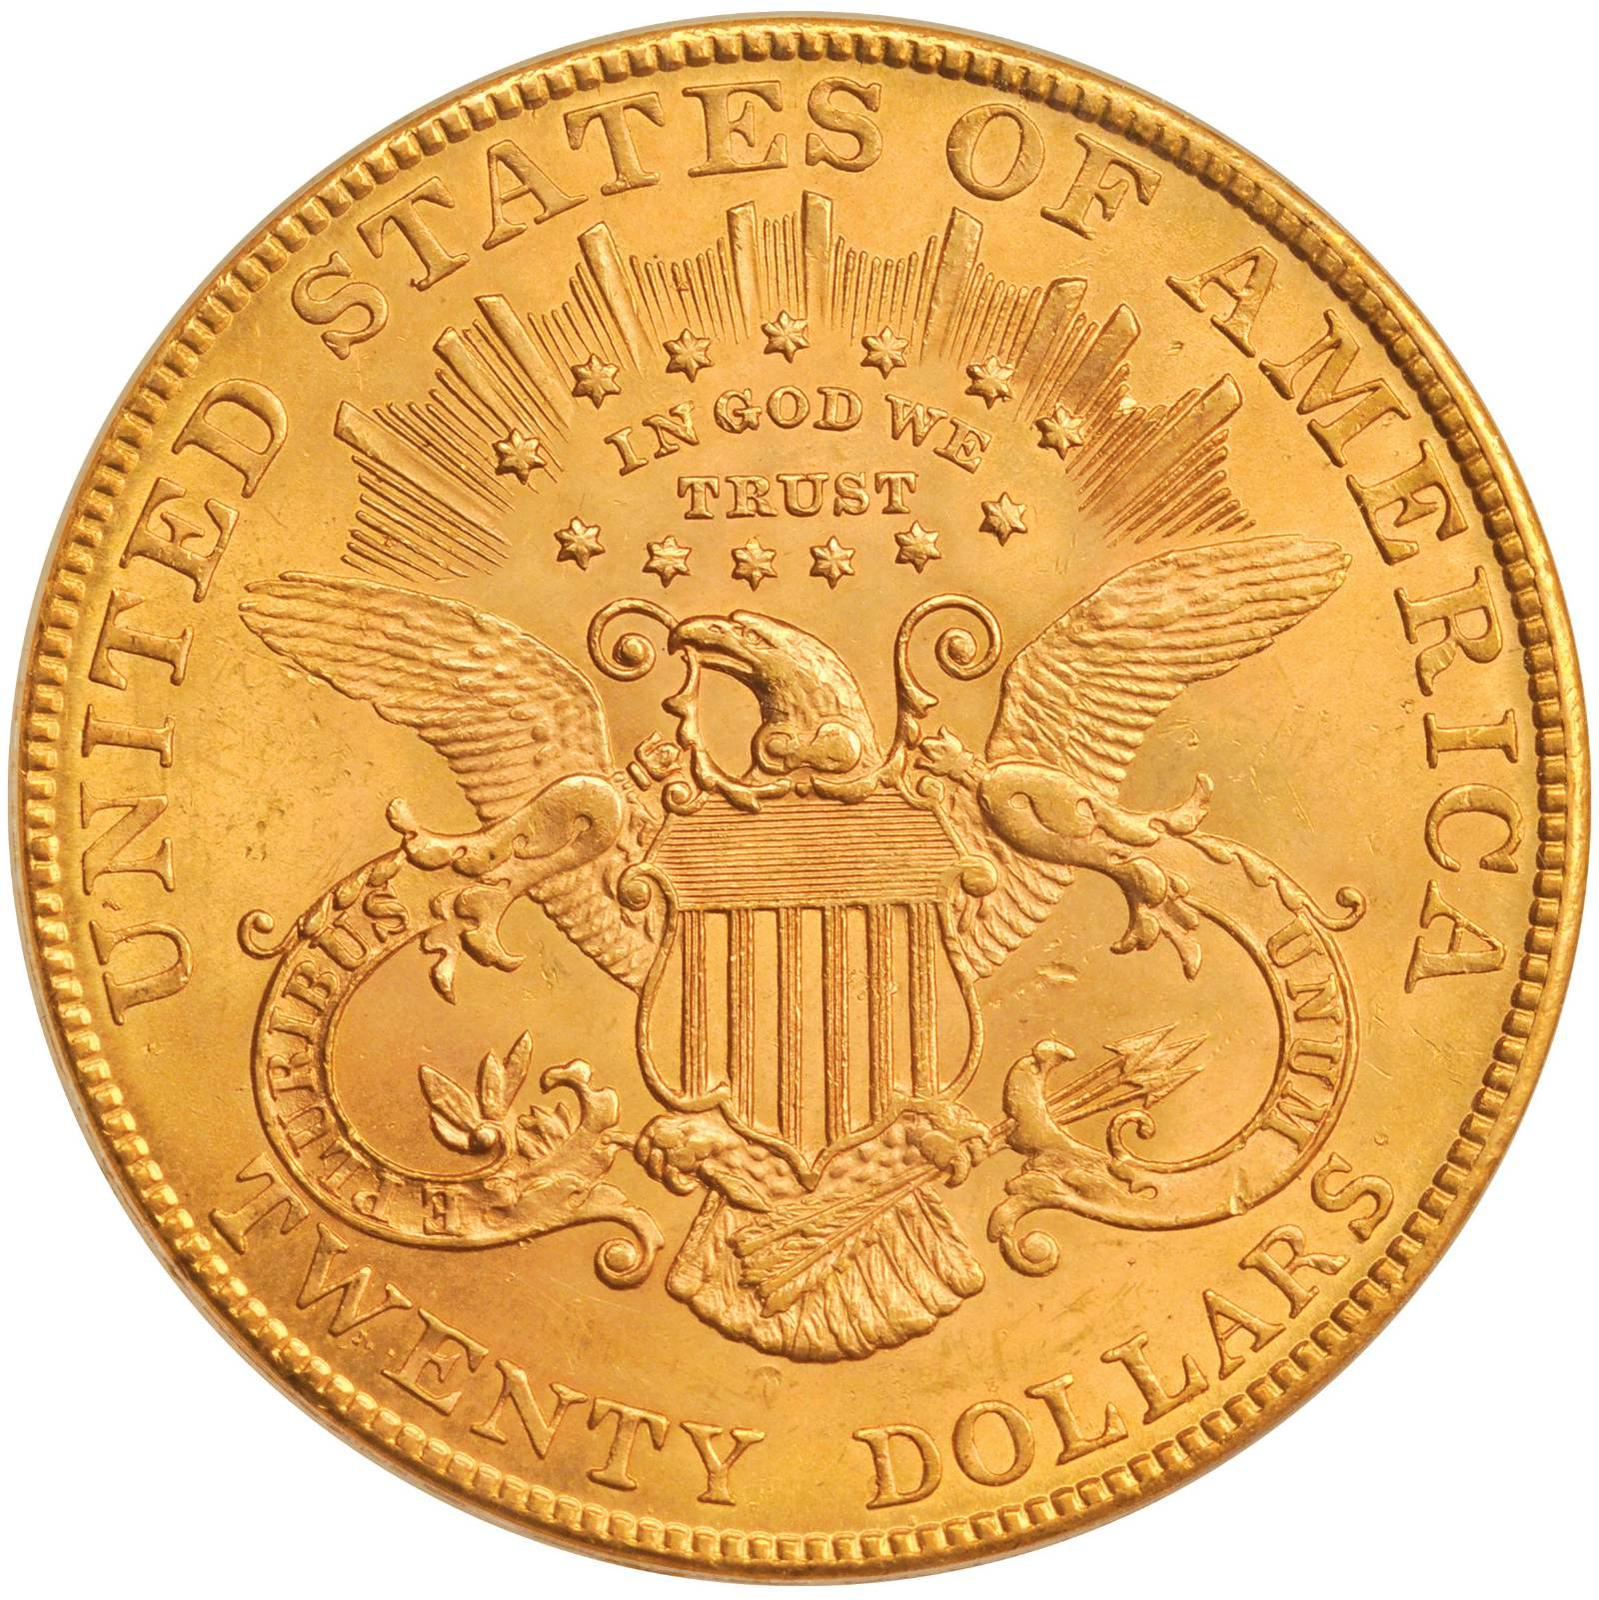 Value of 1906 $20 Liberty Double Eagle | Sell Rare Coins